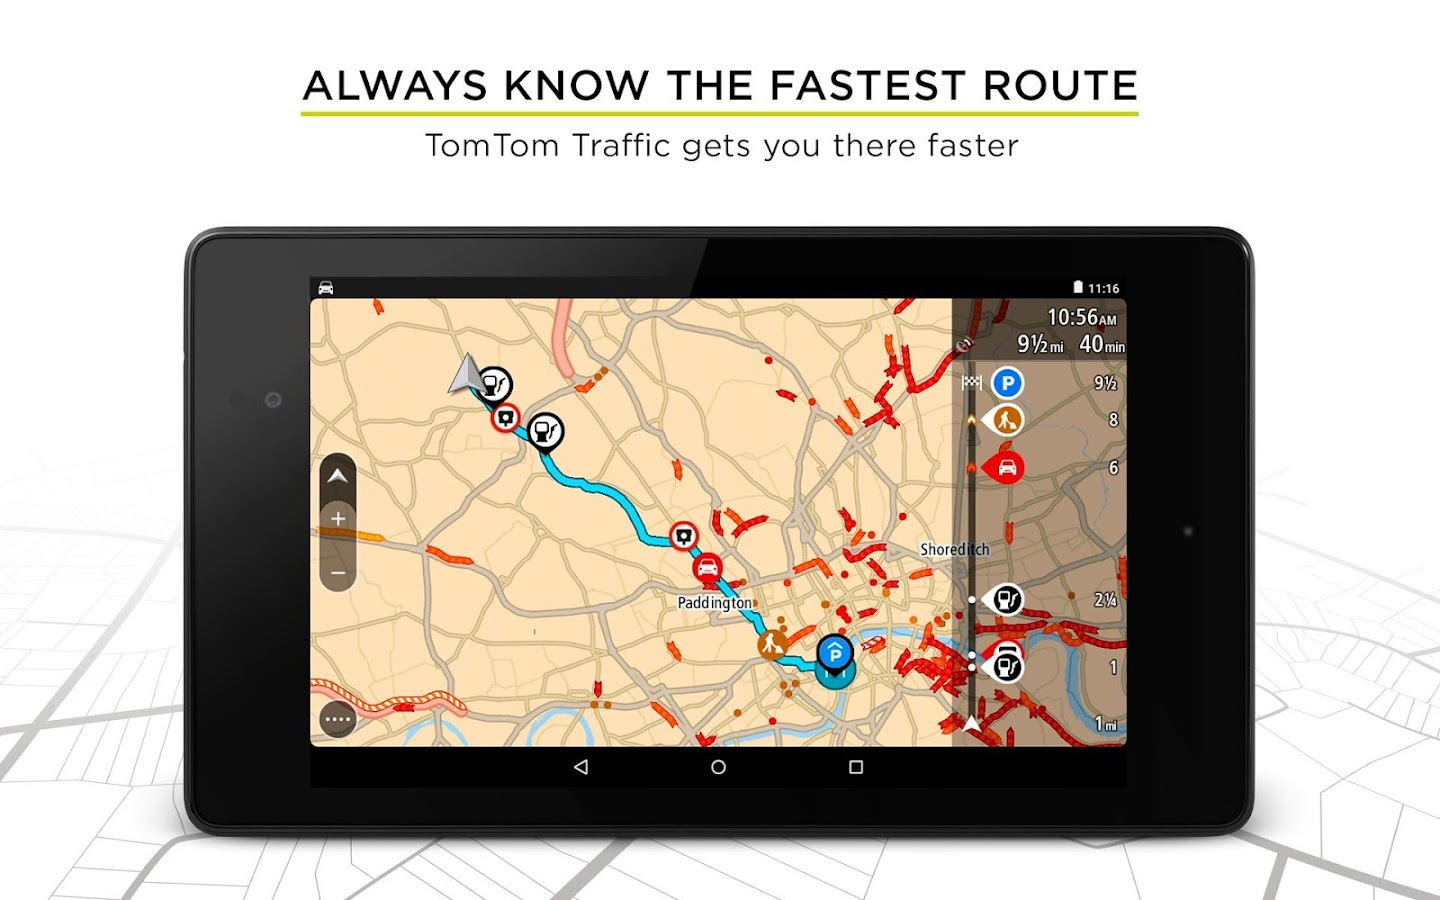 tomtom gps navigation traffic android alkalmaz sok a google playen. Black Bedroom Furniture Sets. Home Design Ideas